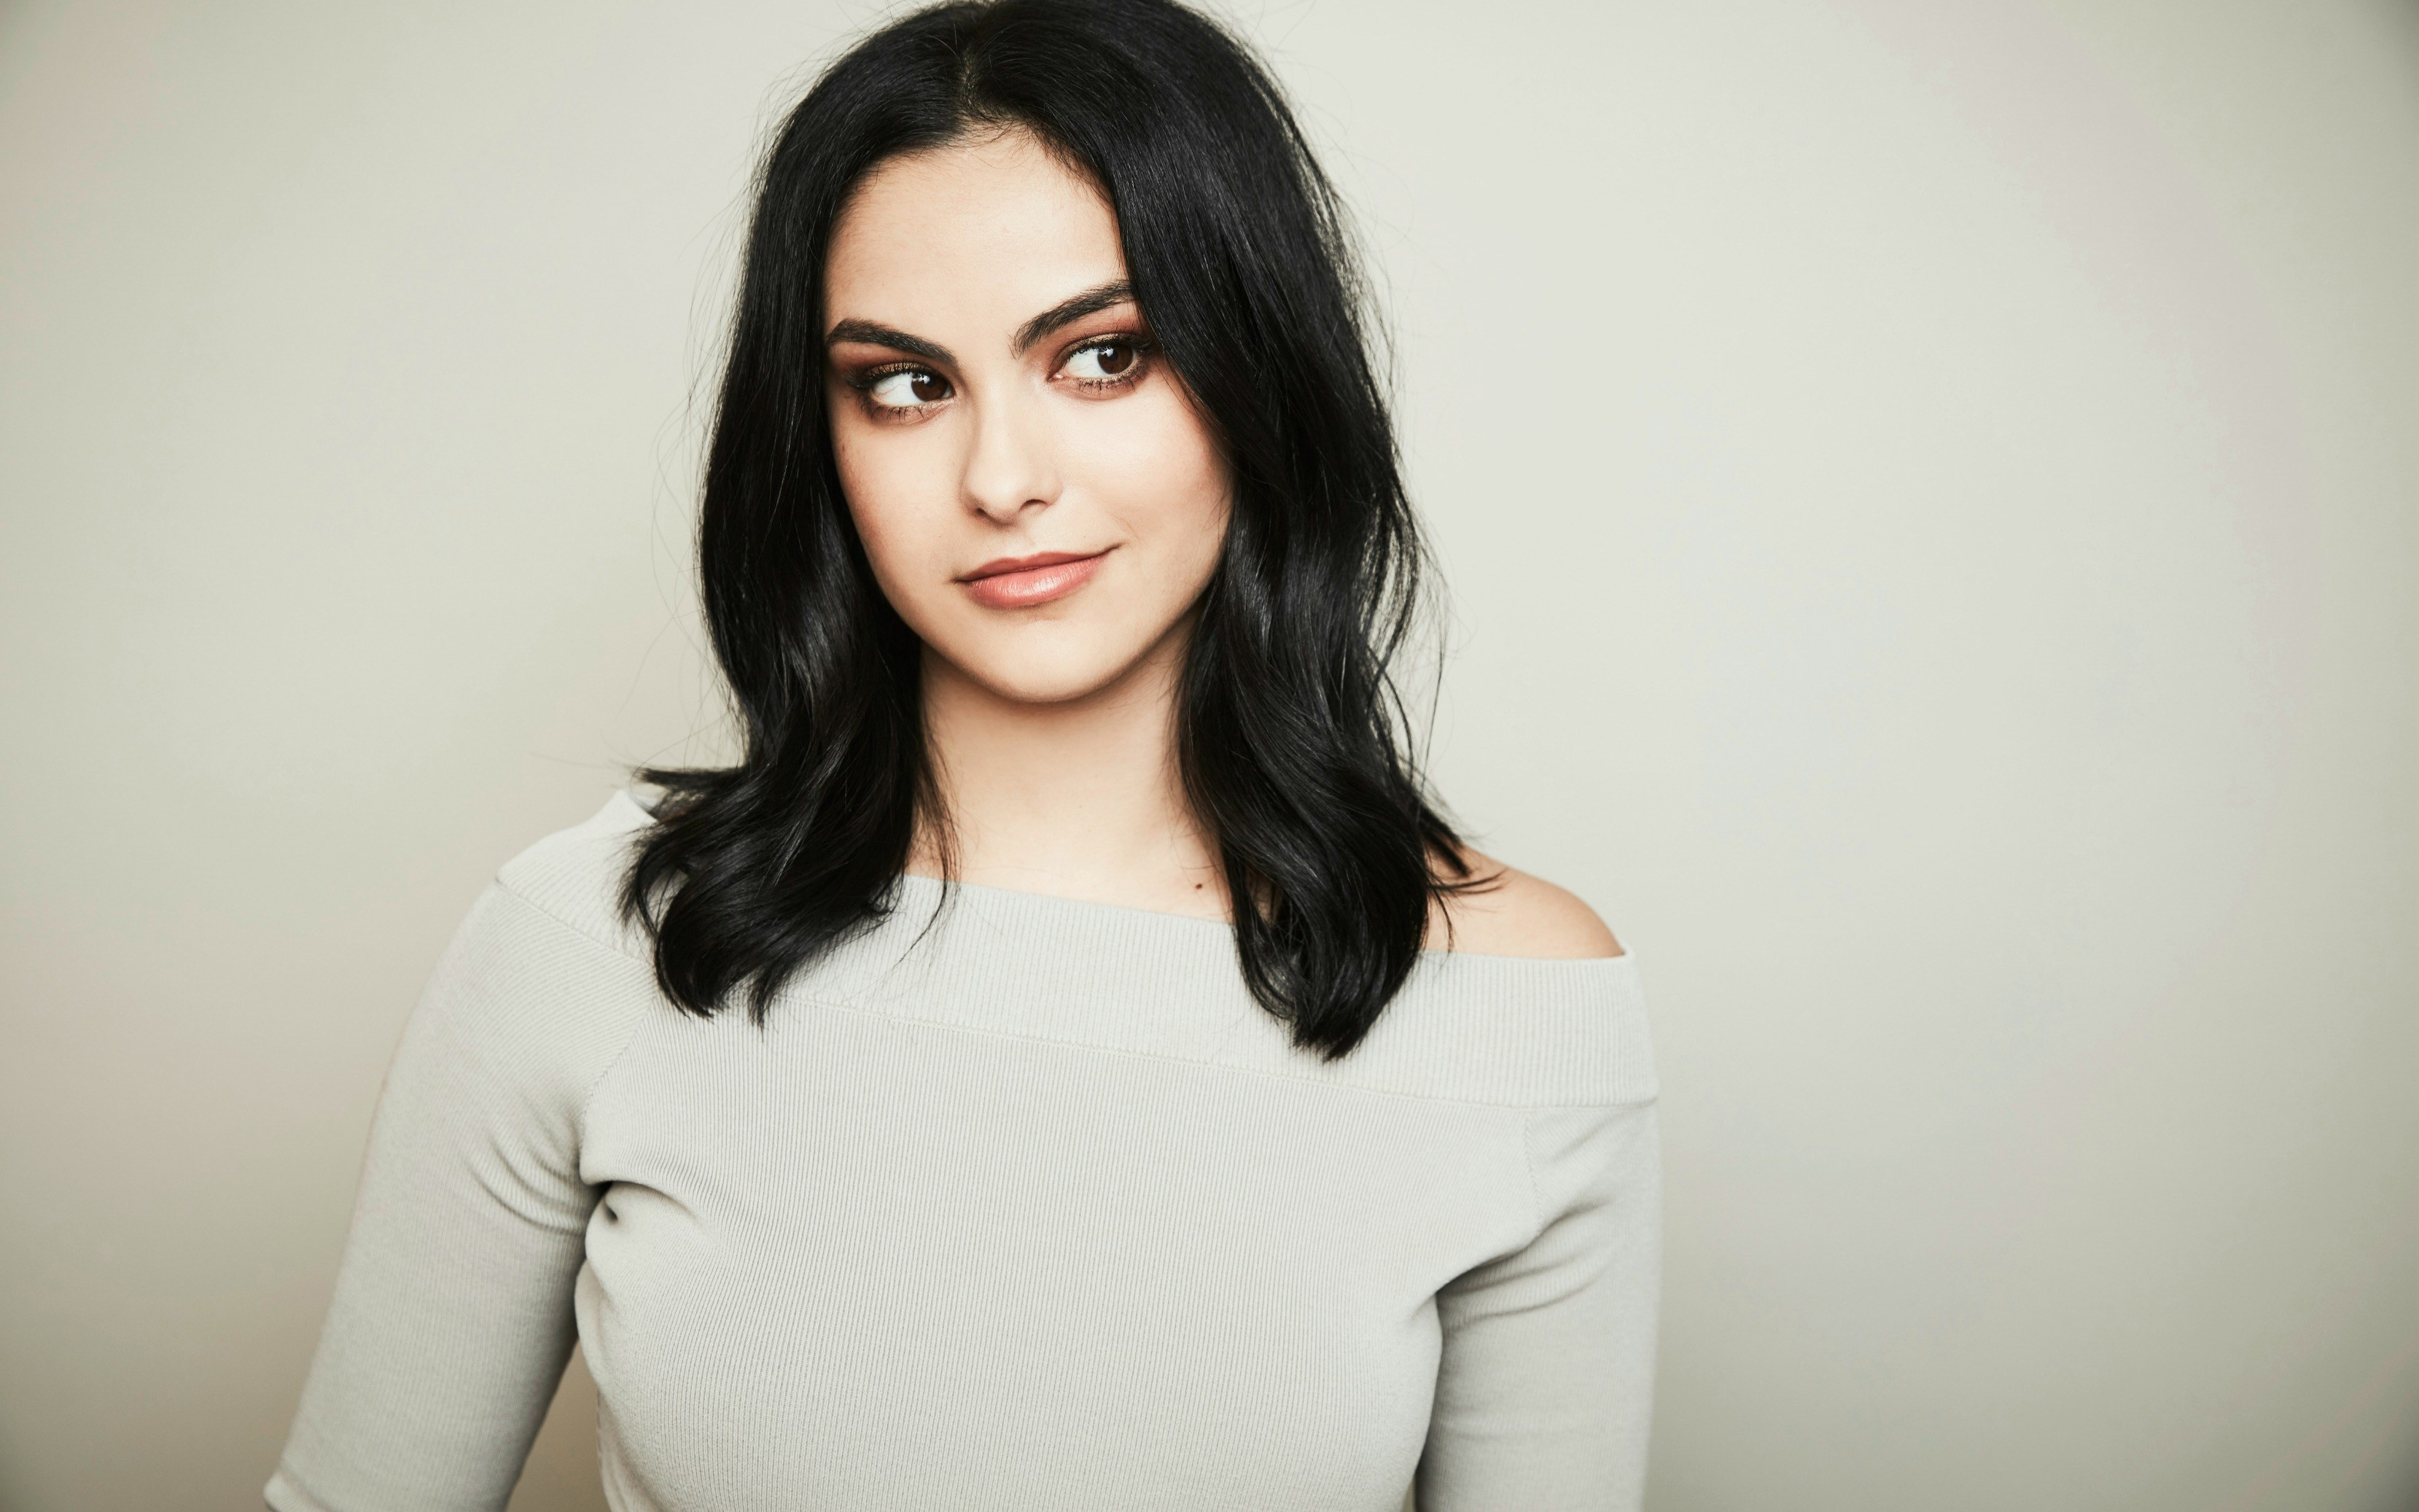 Riverdale Actress Camila Mendes Wallpapers